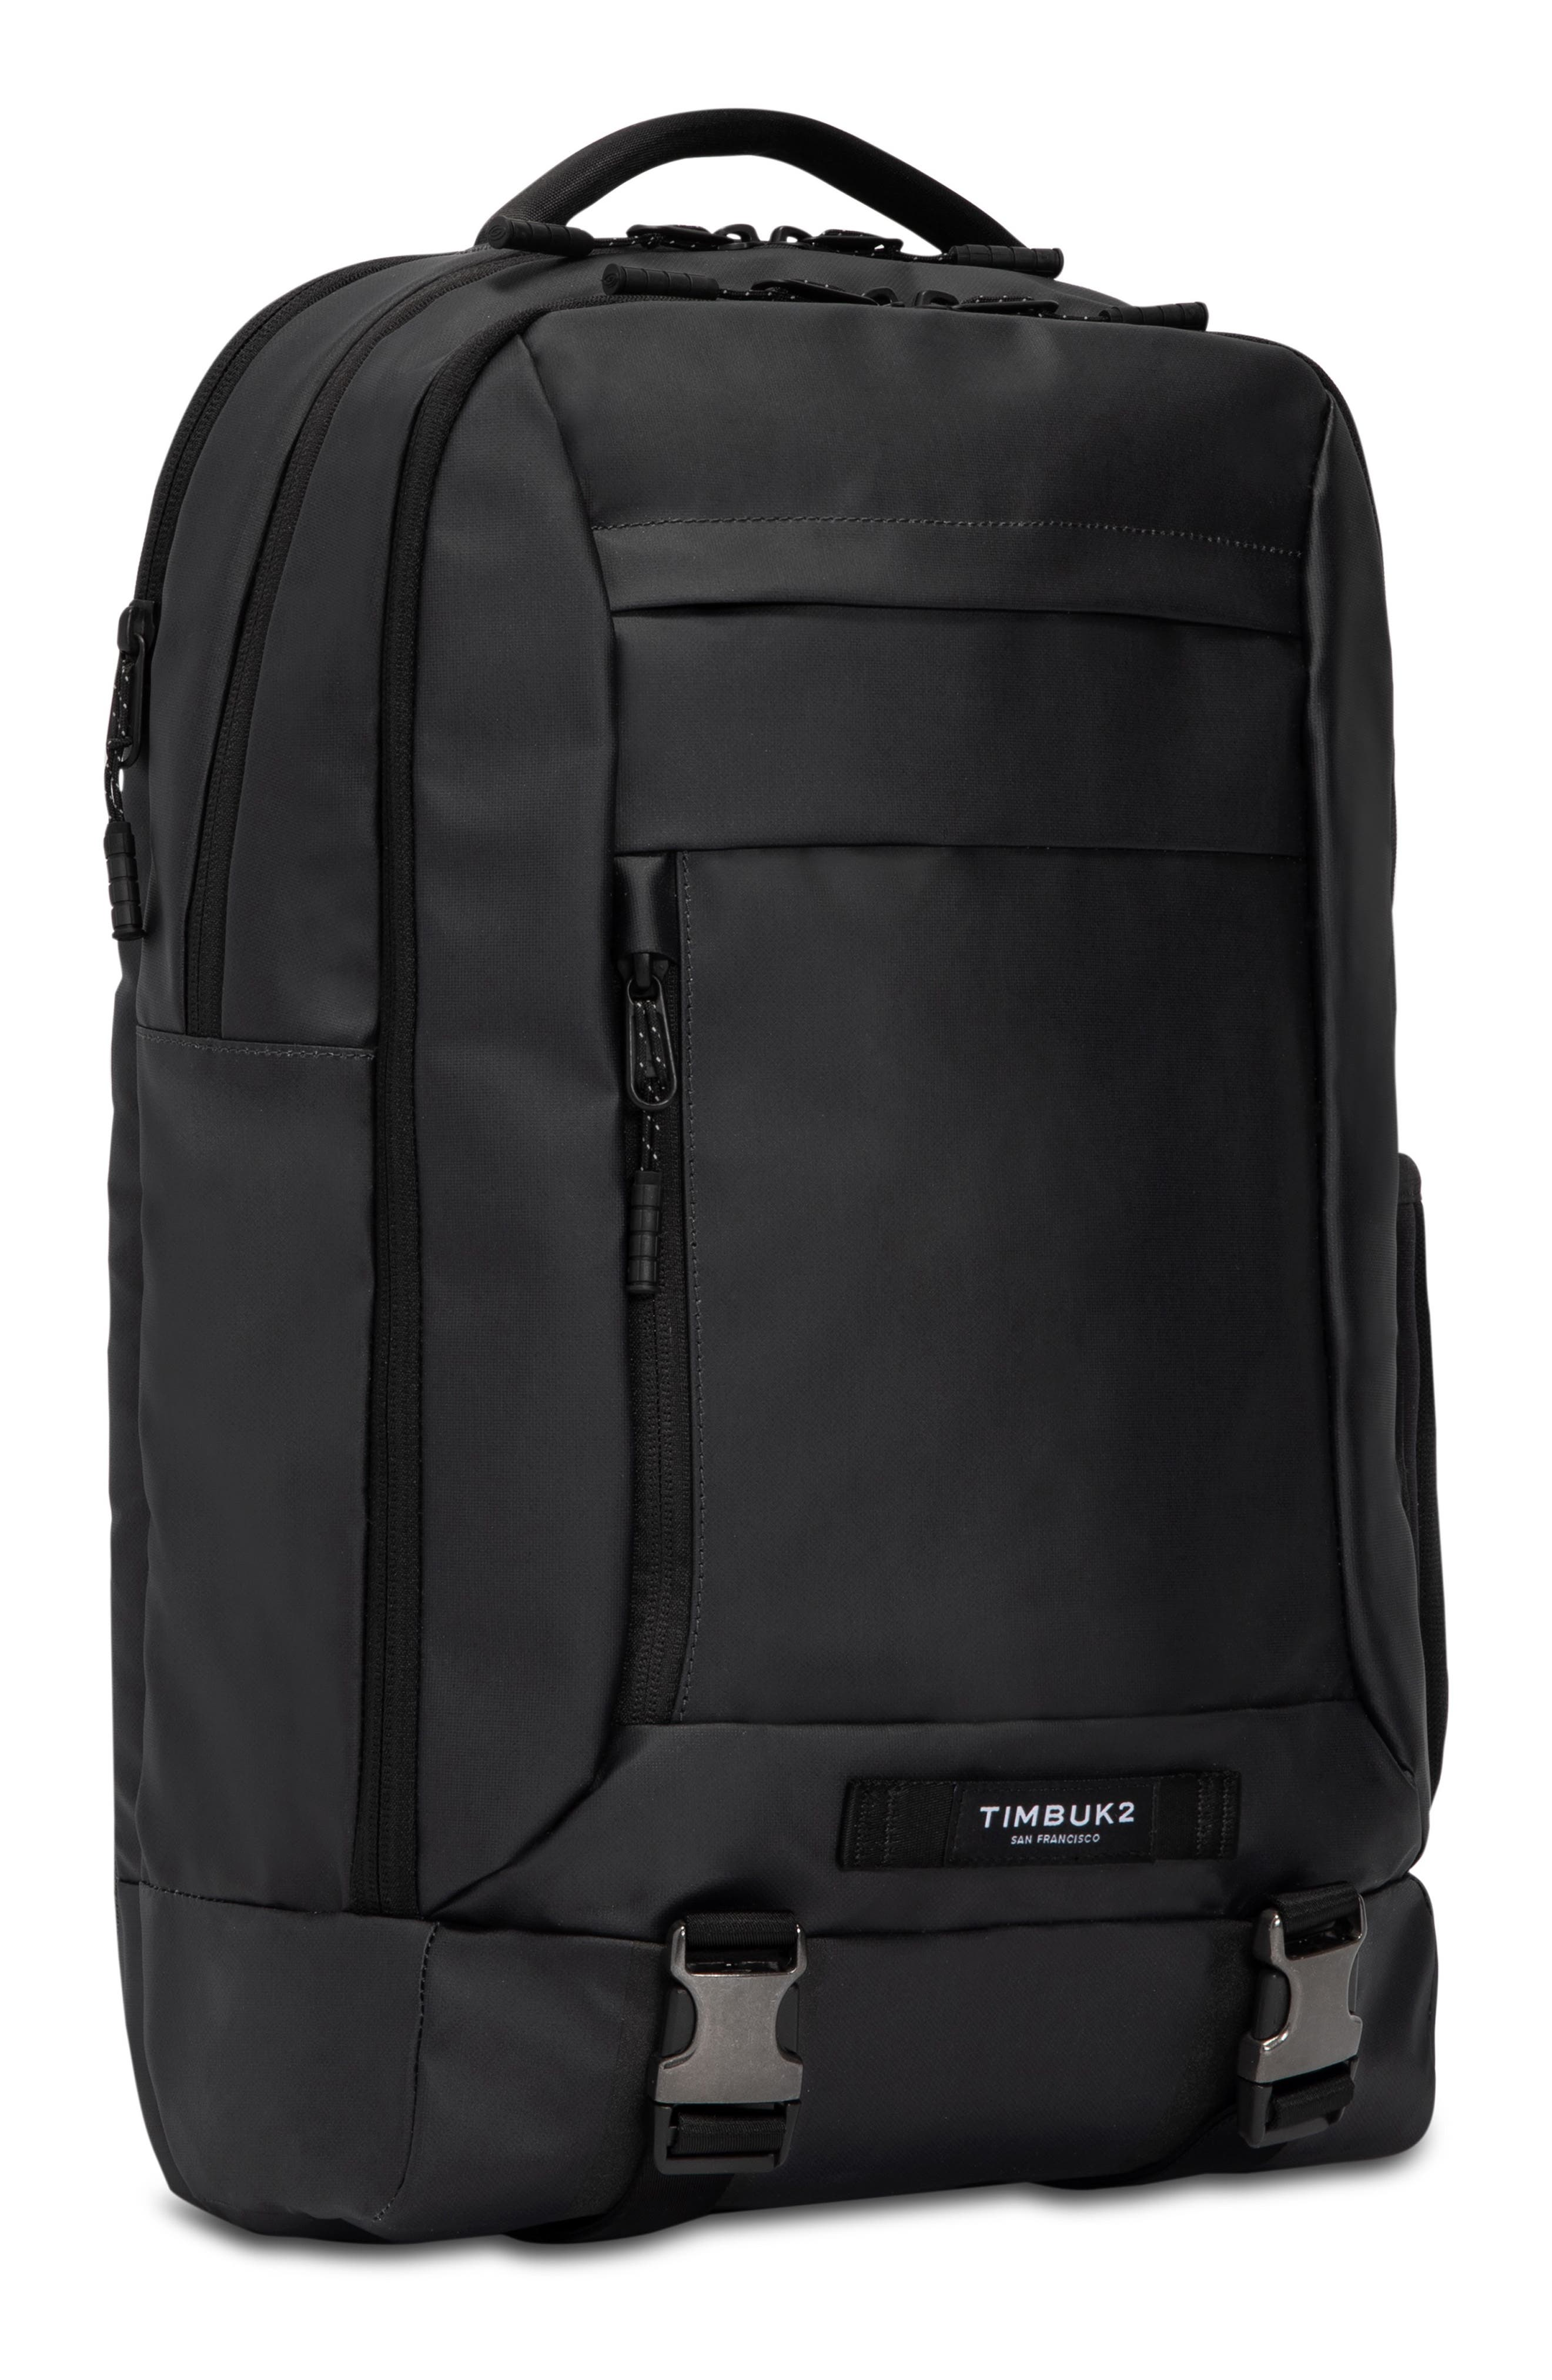 0a5cdea037f Timbuk2 Authority Backpack - Grey